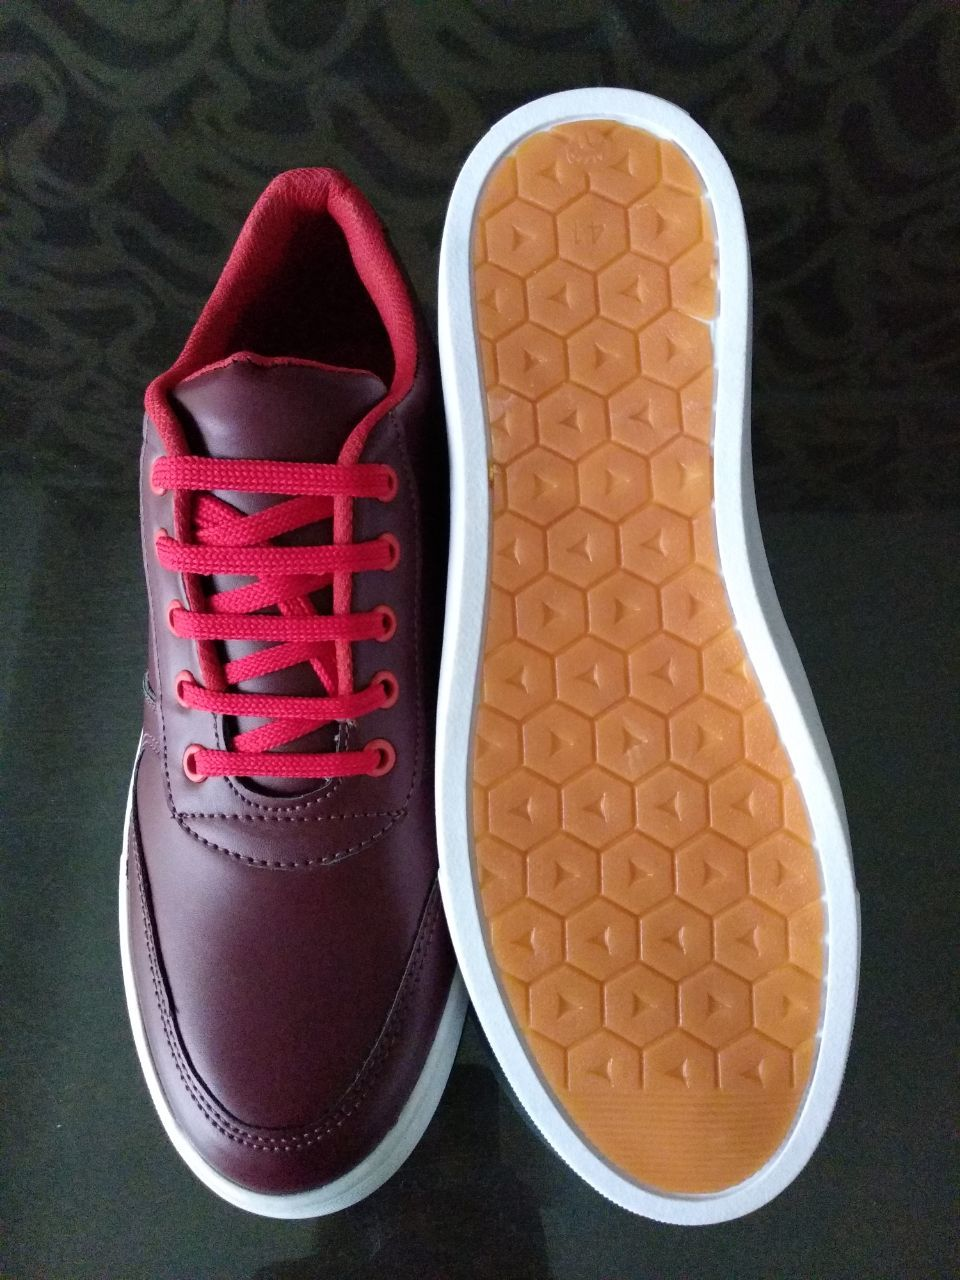 CASUAL FASHIONABLE SHOES FOR MEN'S ON TPR SOLE